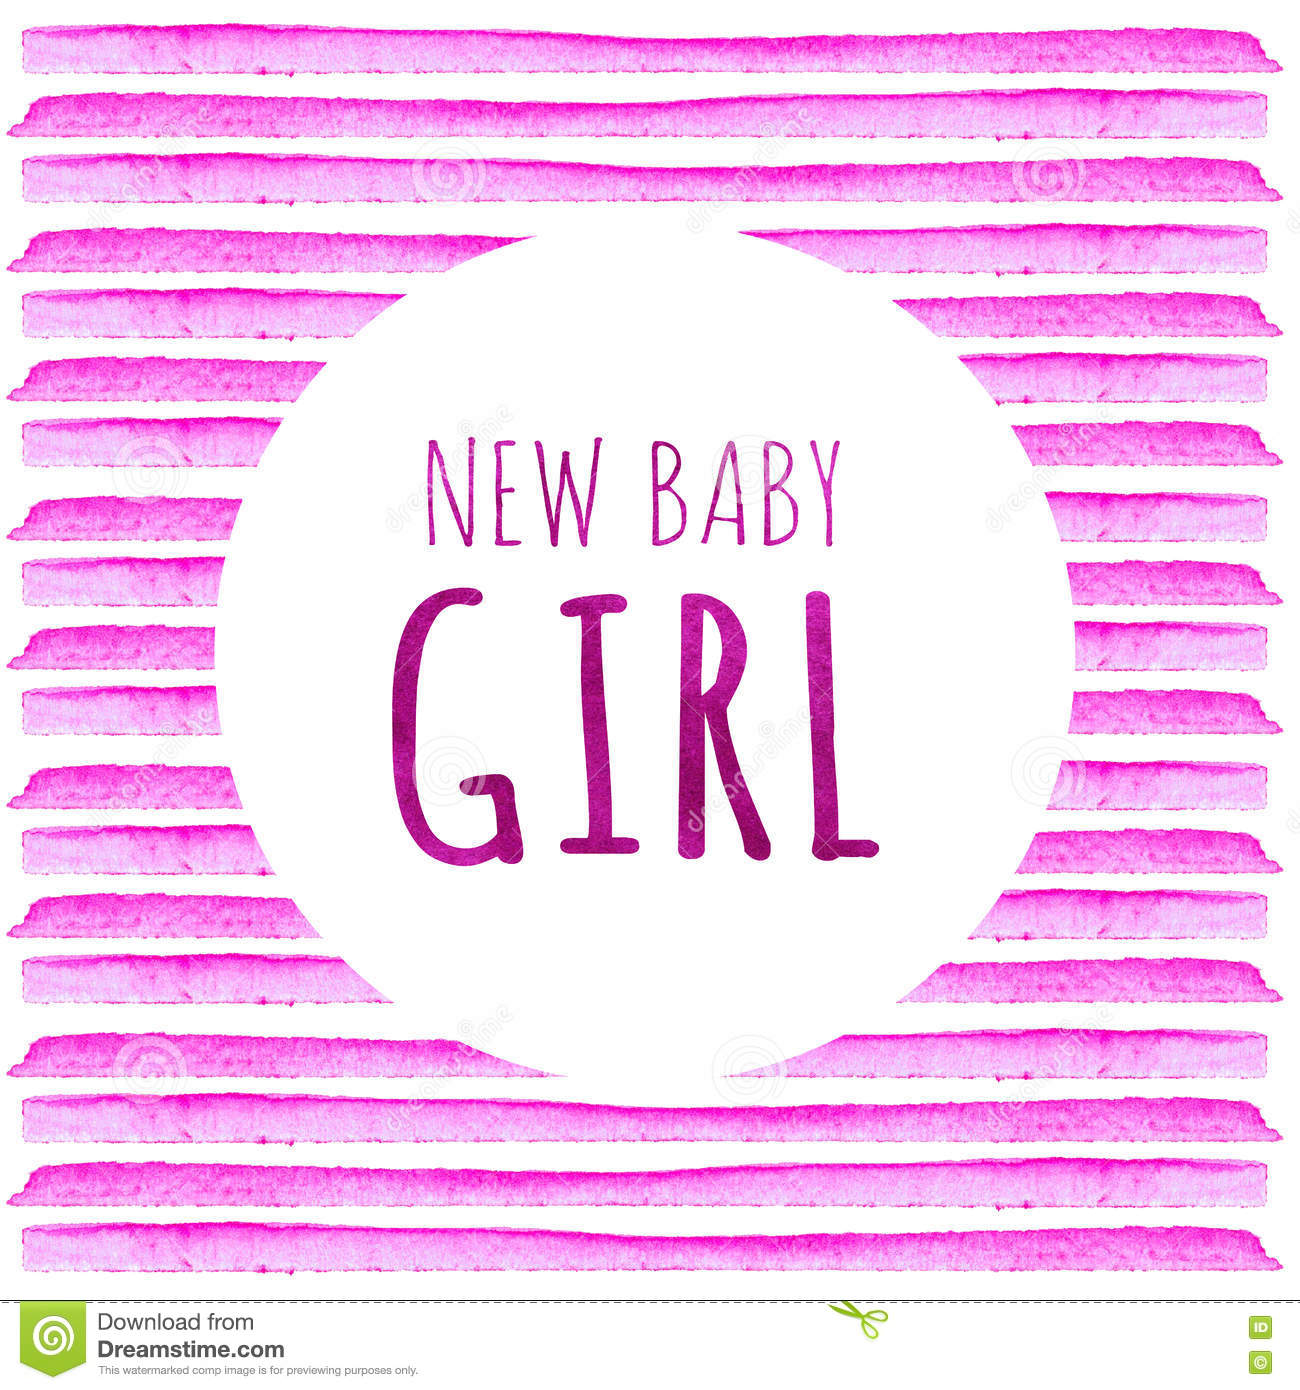 new baby girl watercolor creative greeting cards template retro